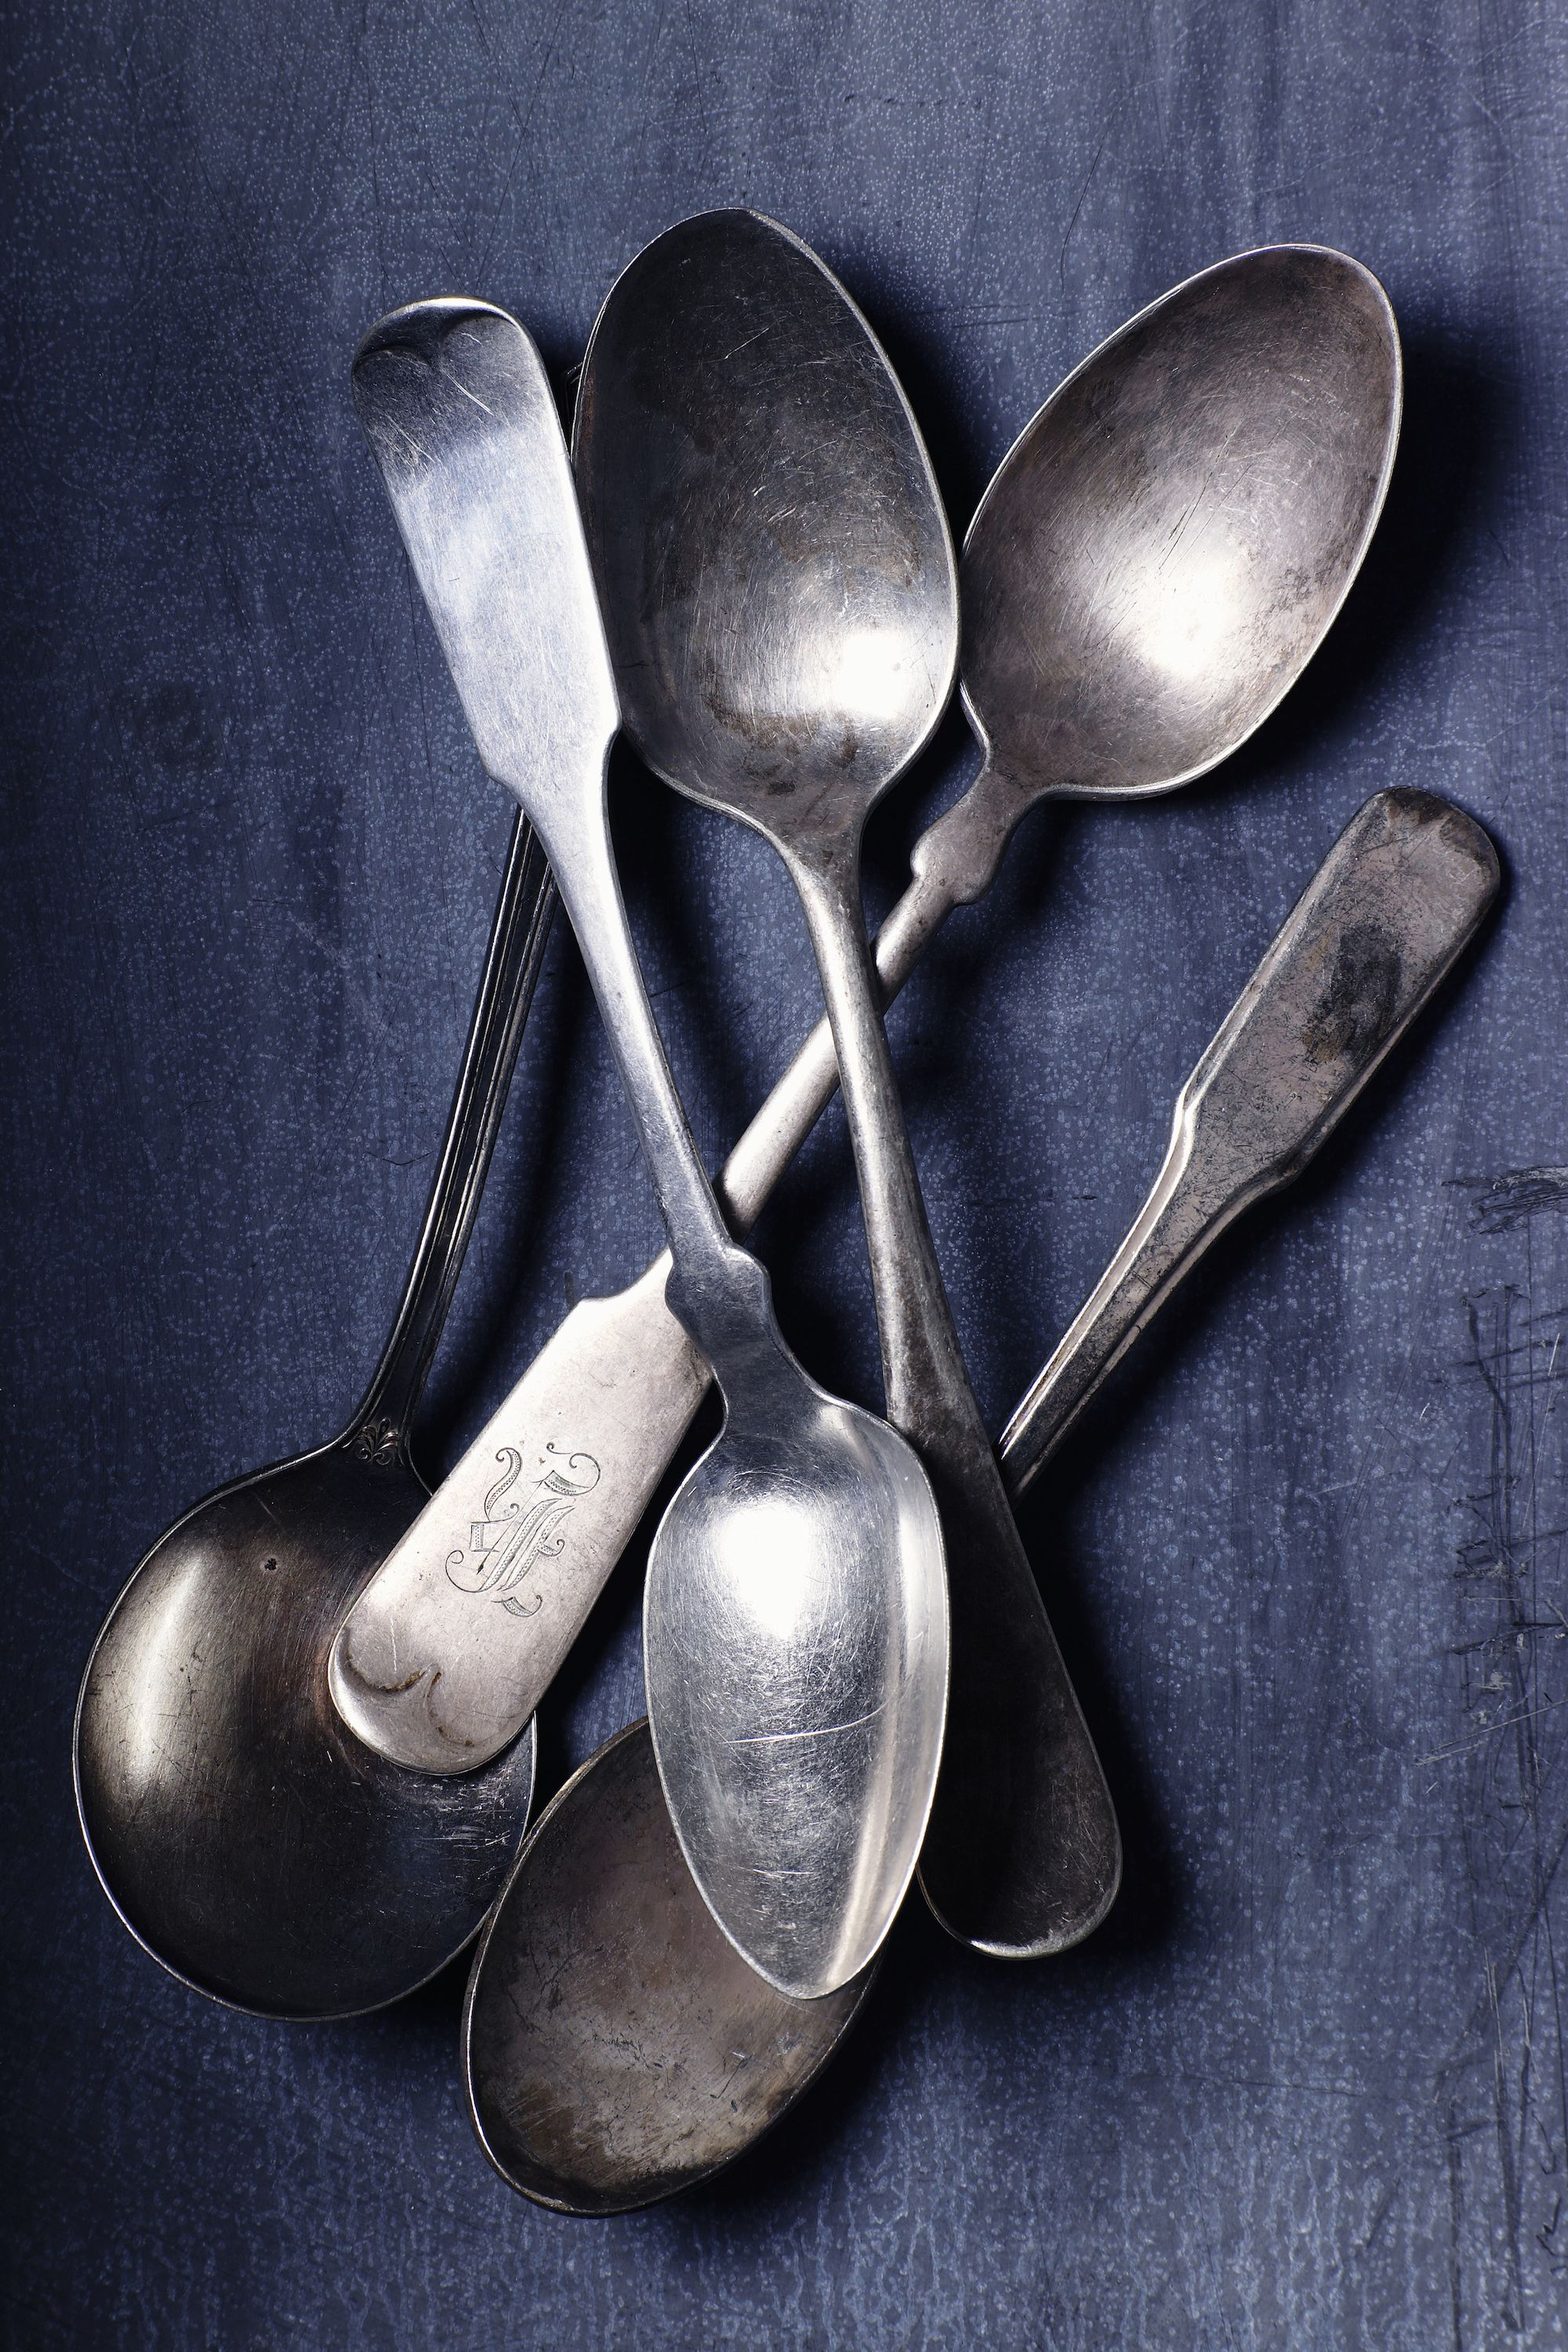 """<p>Keep your eyes peeledfor precious metal hiding in the flatware.<a href=""""http://www.goodhousekeeping.com/home/g4606/antiques-to-look-for-at-estate-sales/"""" data-tracking-id=""""recirc-text-link"""" target=""""_blank"""">Real silver</a><span class=""""redactor-invisible-space"""" data-verified=""""redactor"""" data-redactor-tag=""""span"""" data-redactor-class=""""redactor-invisible-space""""> will usually look tarnished (but you can <a href=""""https://www.youtube.com/watch?v=LvK3i3d4eUY"""" target=""""_blank"""" data-tracking-id=""""recirc-text-link"""">polish it with water and baking soda</a>!)and <a href=""""http://www.wikihow.com/Test-Silver"""" target=""""_blank"""" data-tracking-id=""""recirc-text-link"""">make a ringing sound</a> if you tap it. Snapping up an entire set or findingbrand names<a href=""""http://www.countryliving.com/shopping/antiques/g3535/selling-antiques/?slide=24"""" target=""""_blank"""" data-tracking-id=""""recirc-text-link"""">like Tiffany or Gorham</a>canalso add more value.</span></p><p><span class=""""redactor-invisible-space"""" data-verified=""""redactor"""" data-redactor-tag=""""span"""" data-redactor-class=""""redactor-invisible-space""""><a href=""""https://www.ebay.com/sch/i.html?_odkw=silverware&_osacat=0&_from=R40&_trksid=p2045573.m570.l1313.TR0.TRC0.H0.Xvintage+silverware.TRS0&_nkw=vintage+silverware&_sacat=0"""" data-tracking-id=""""recirc-text-link"""" target=""""_blank""""><em data-redactor-tag=""""em"""" data-tracking-id=""""recirc-text-link"""">Shop it on Ebay ».</em></a><span class=""""redactor-invisible-space"""" data-verified=""""redactor"""" data-redactor-tag=""""span"""" data-redactor-class=""""redactor-invisible-space""""></span><br></span></p>"""